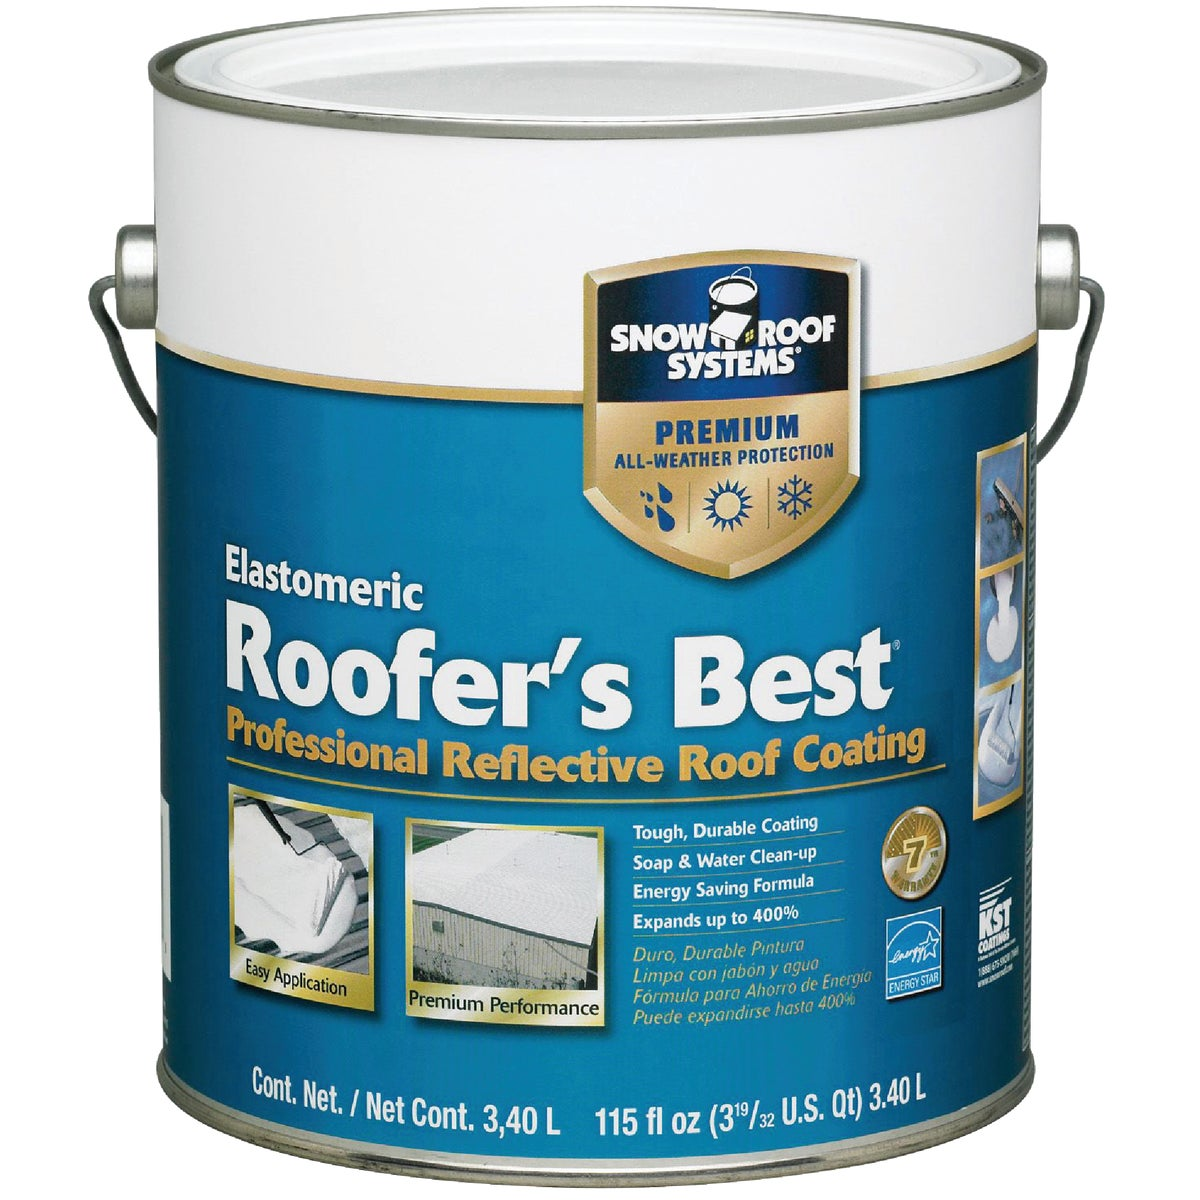 GAL REFLECT ROOF COATING - RB-1 by Snow Roof